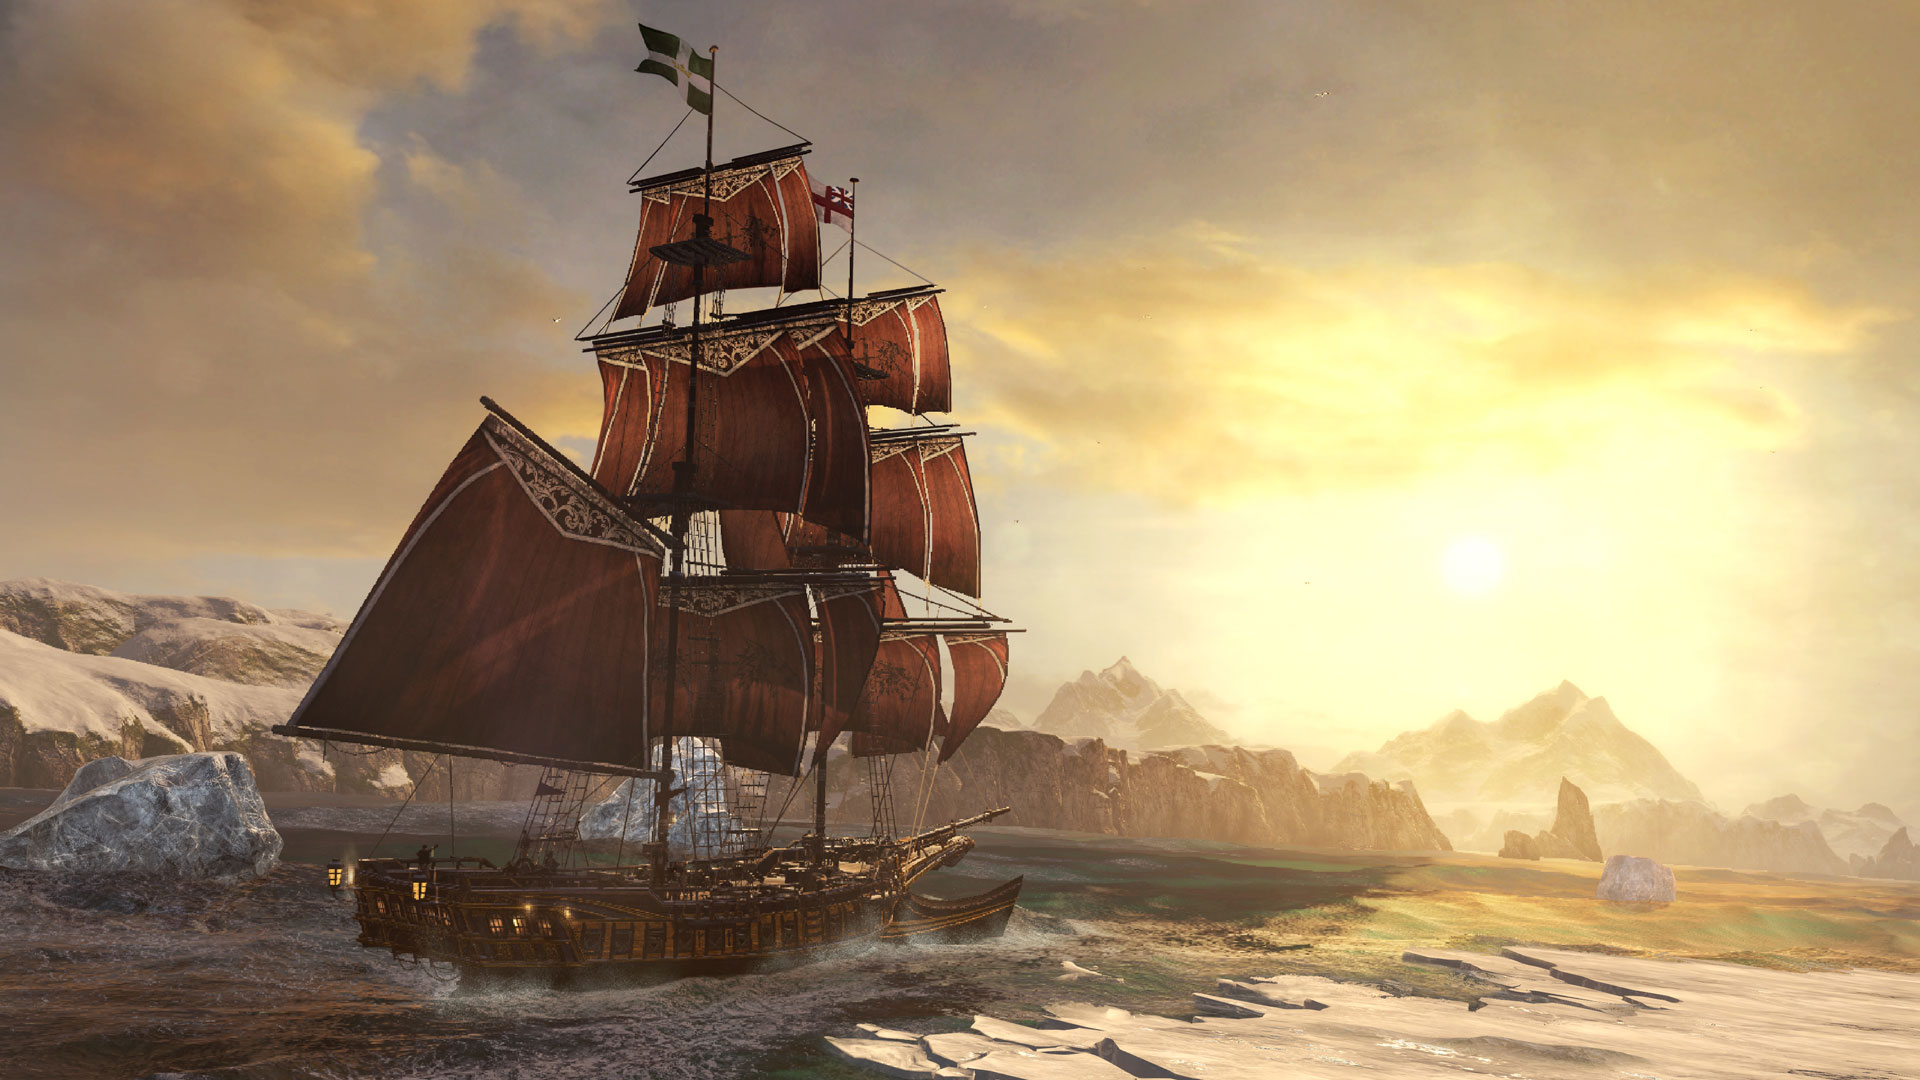 This Week In Games: I'm On A Boat